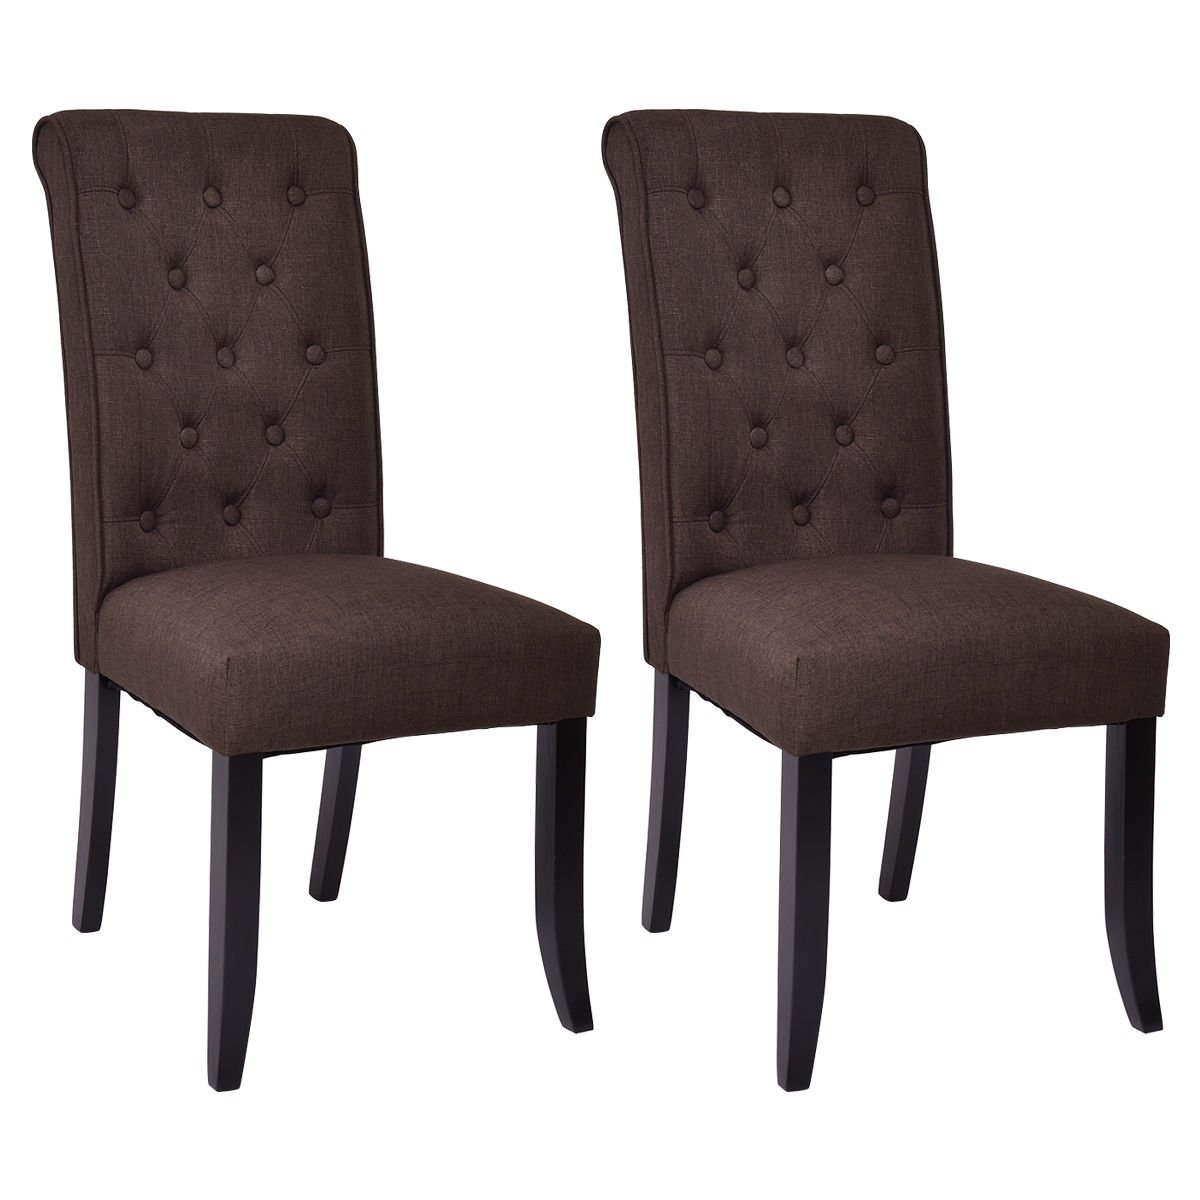 Giantex Set of 2 Dining Chairs Fabric Upholstered Tufted Armless Accent Home Kitchen (Brown)